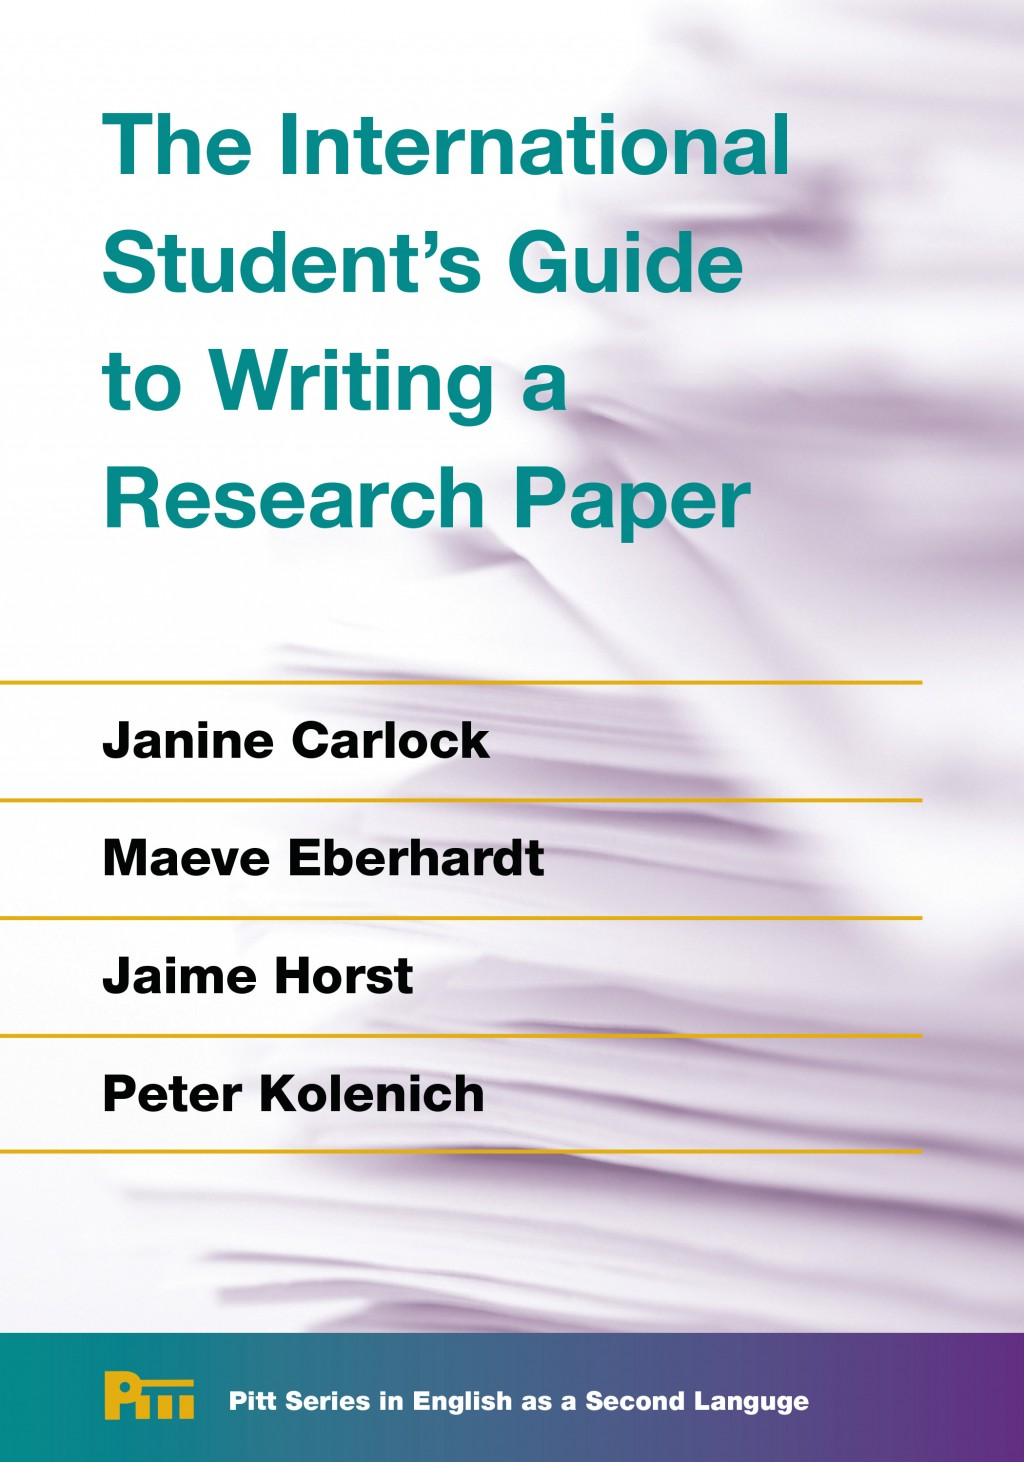 013 Research Paper Striking Writing Papers By James Lester Pdf A Complete Guide 16th Edition Outline Large